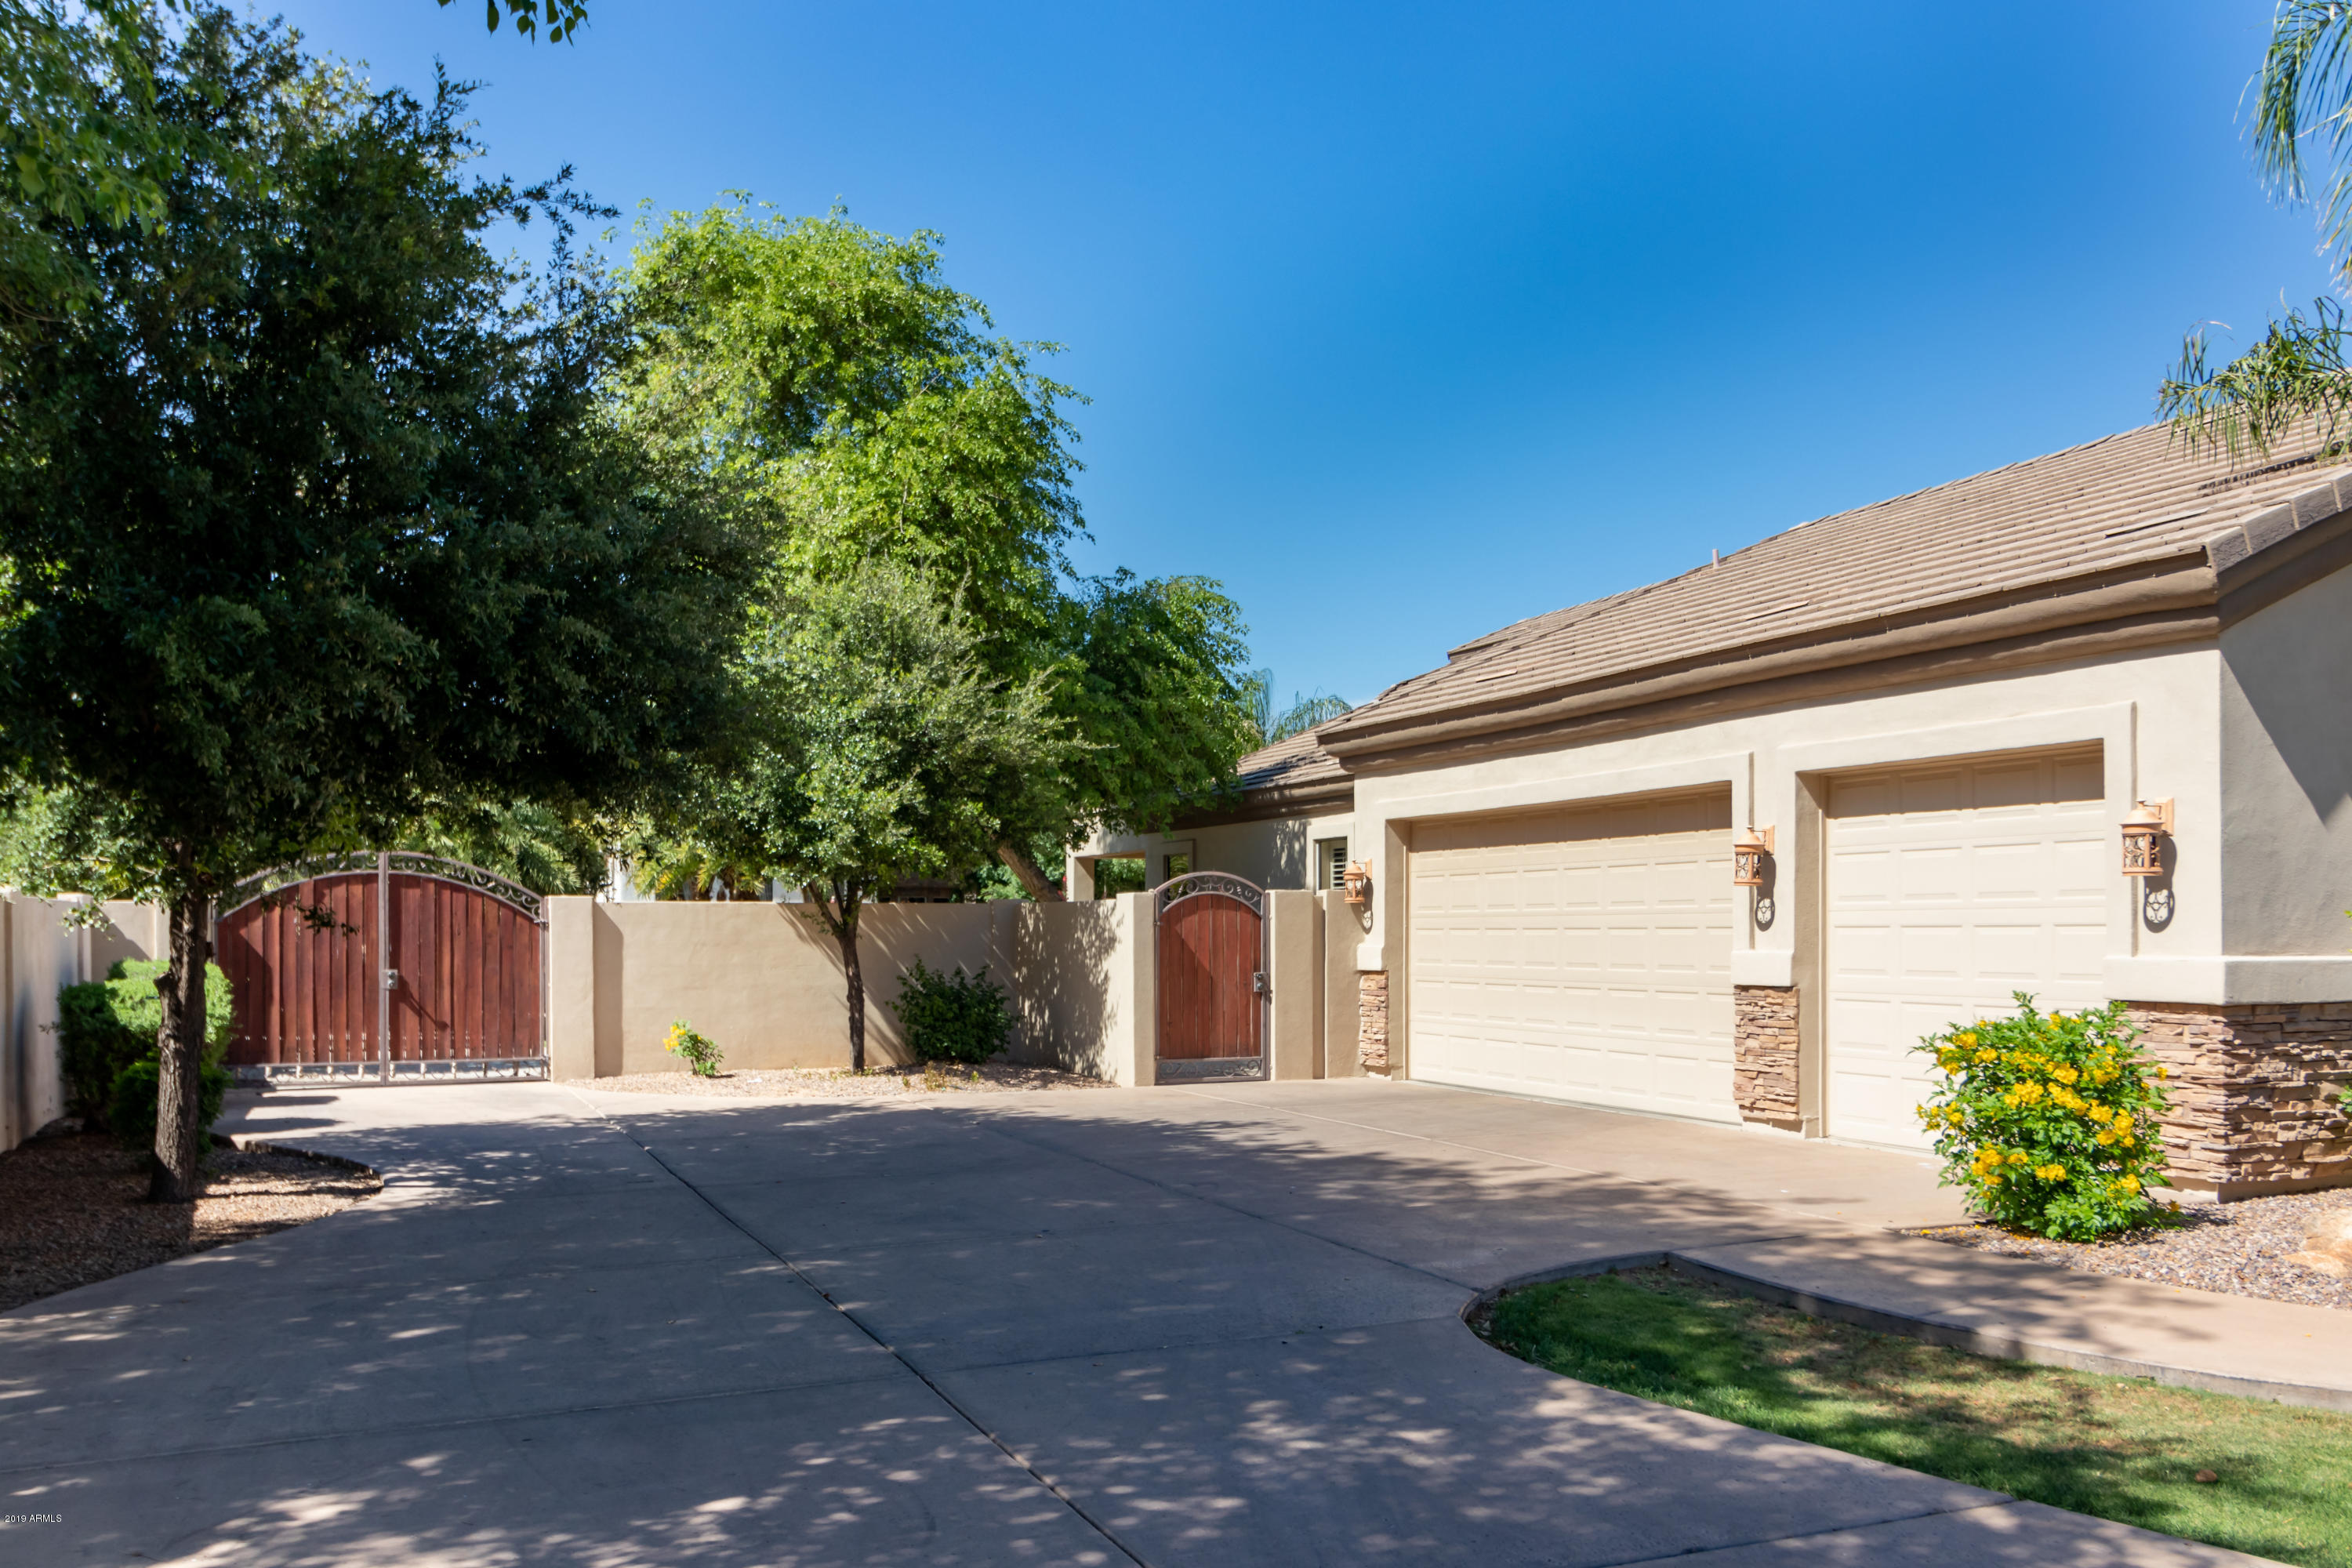 MLS 5927391 2856 E WATERMAN Court, Gilbert, AZ 85297 Gilbert AZ Whitewing At Higley